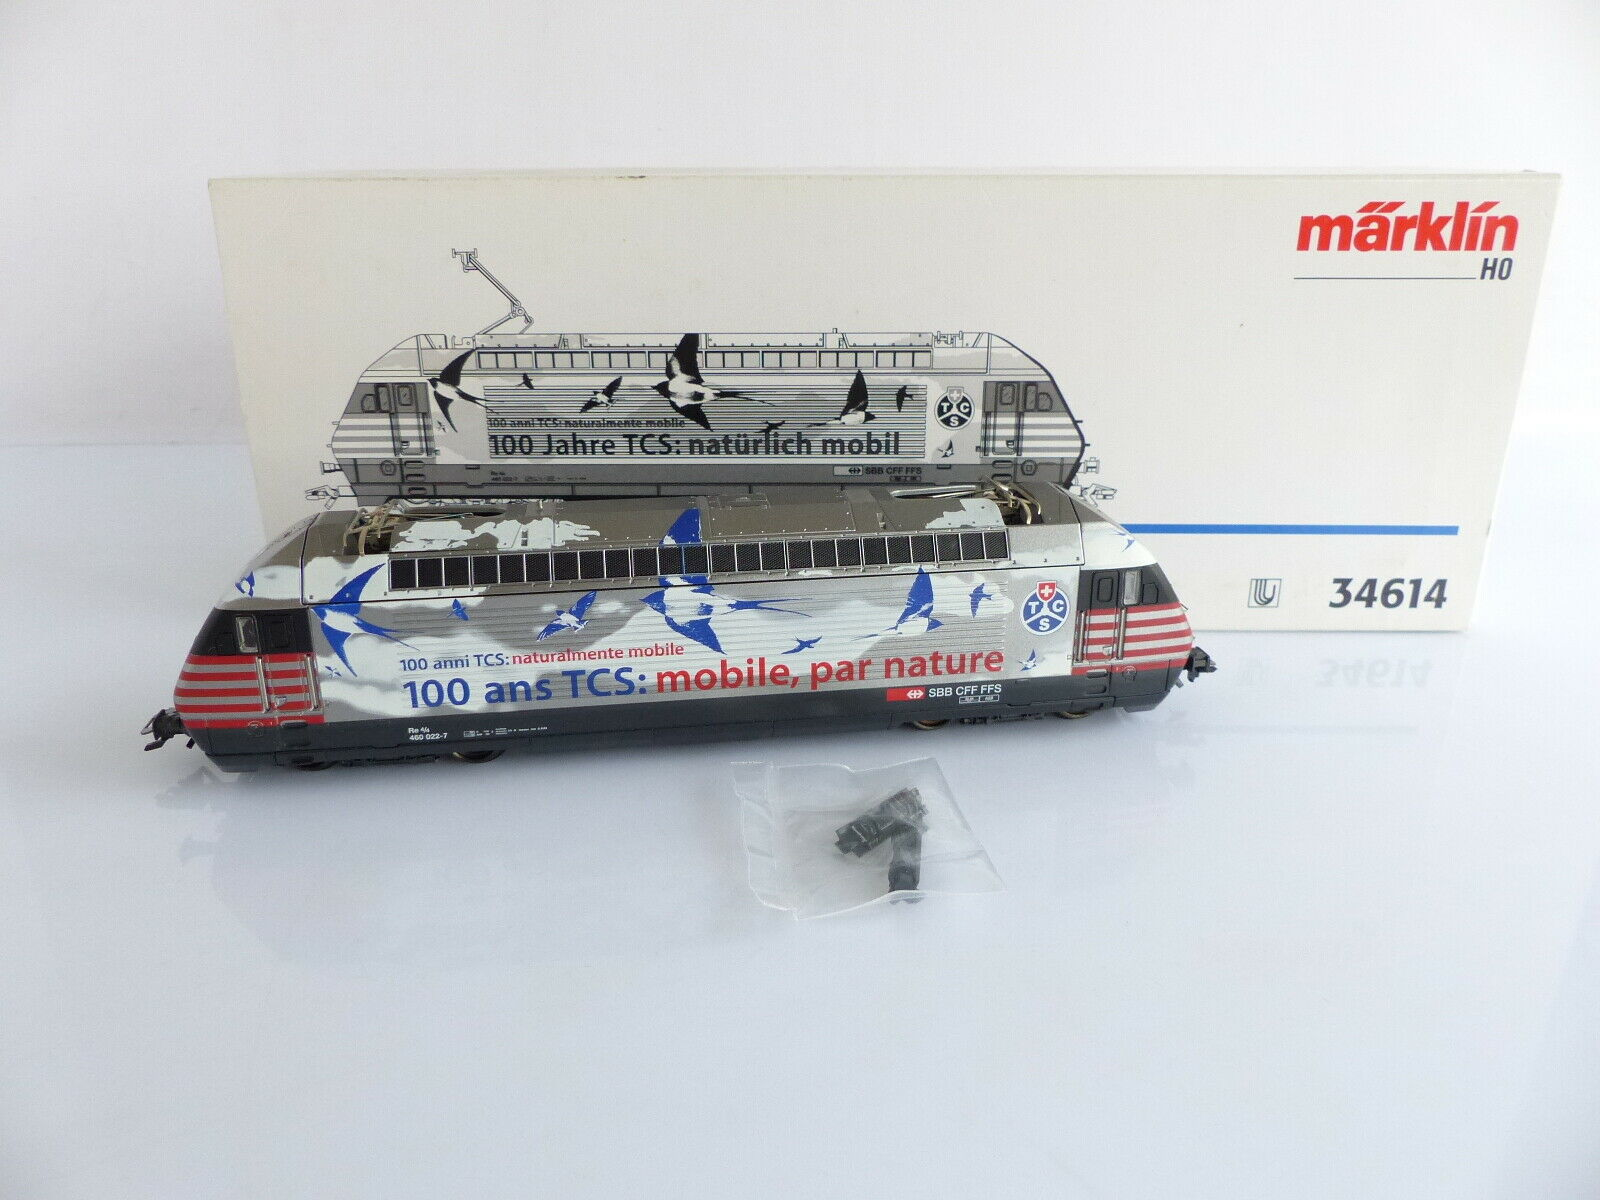 MARKLIN 34614 LOCOMOTIVE ELECTRIQUE Re 4 4 460 022-7   100 JAHRE TCS